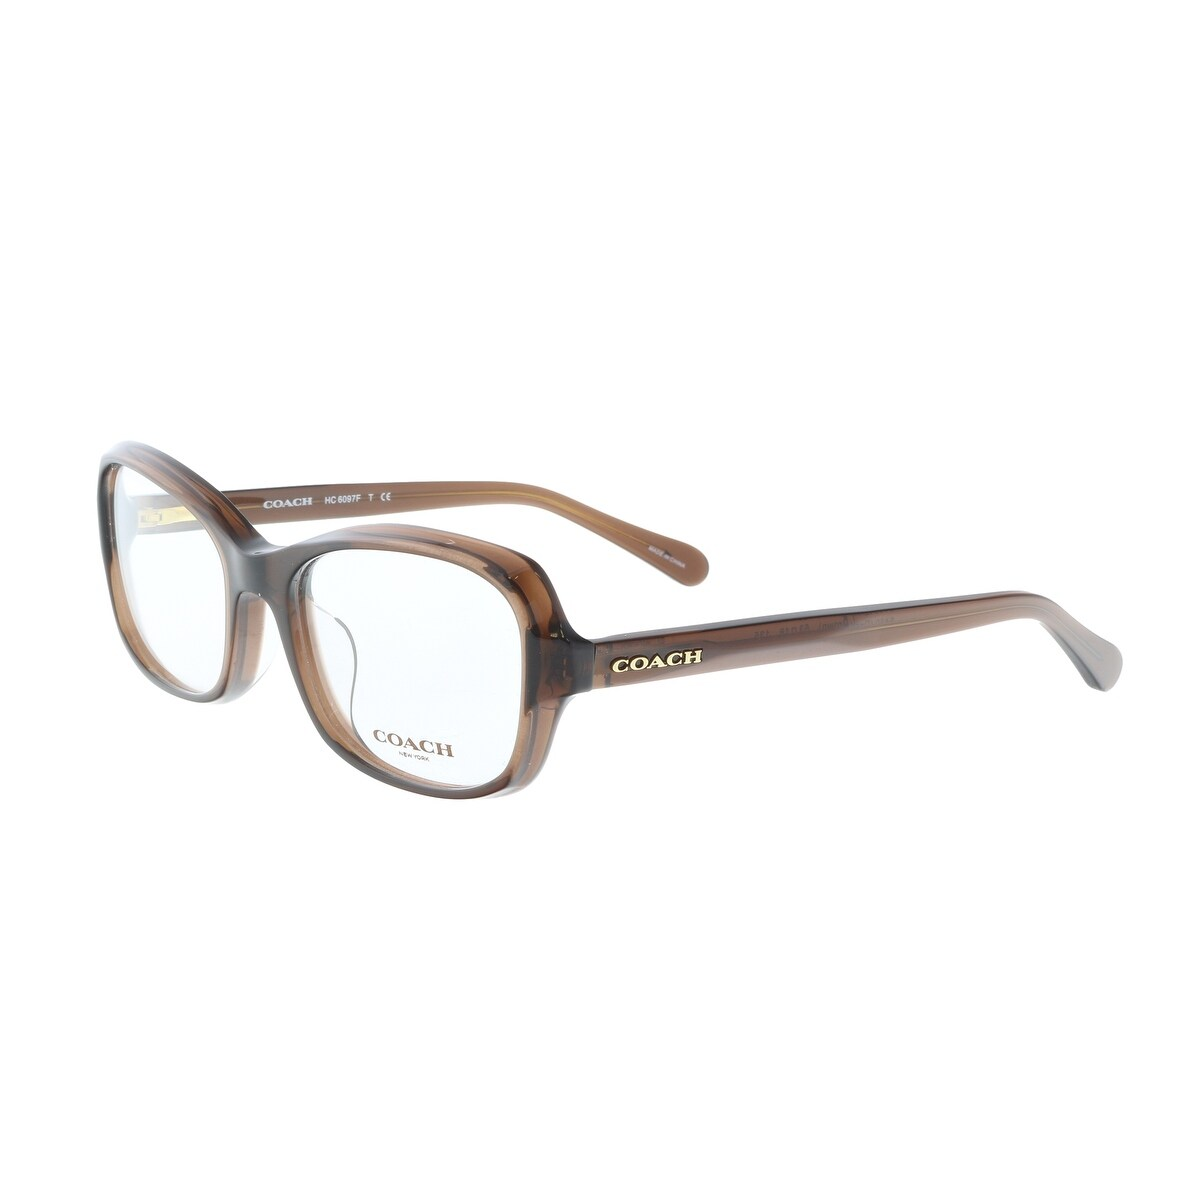 432770dc7fe4 Coach Eyeglasses | Find Great Accessories Deals Shopping at Overstock